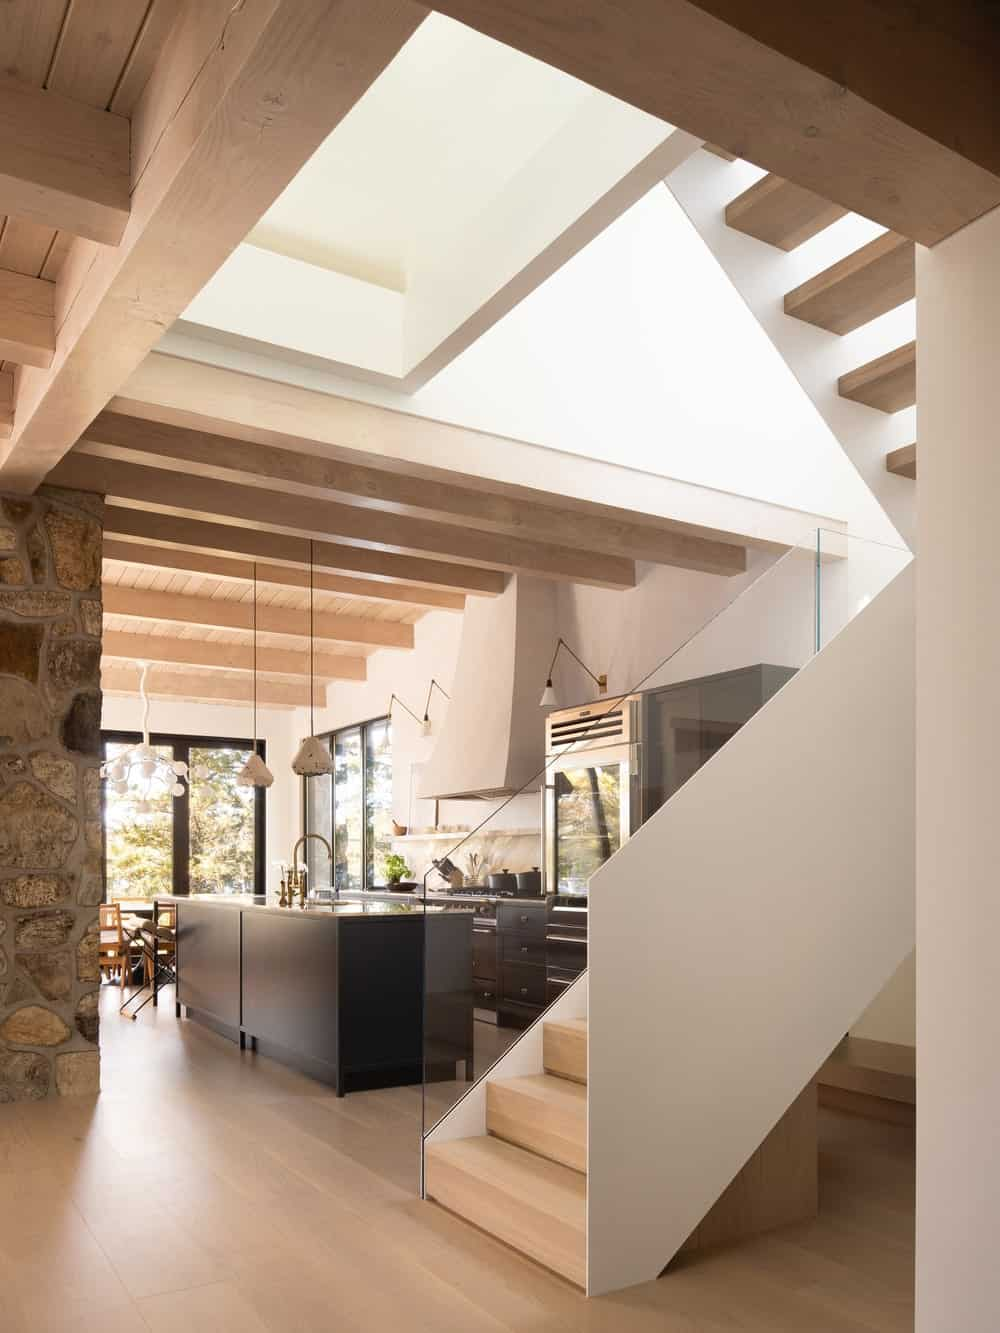 A few steps from the dark kitchen island is the staircase with wooden steps to match the hardwood flooring and the walls to match the rest of the house interiors.